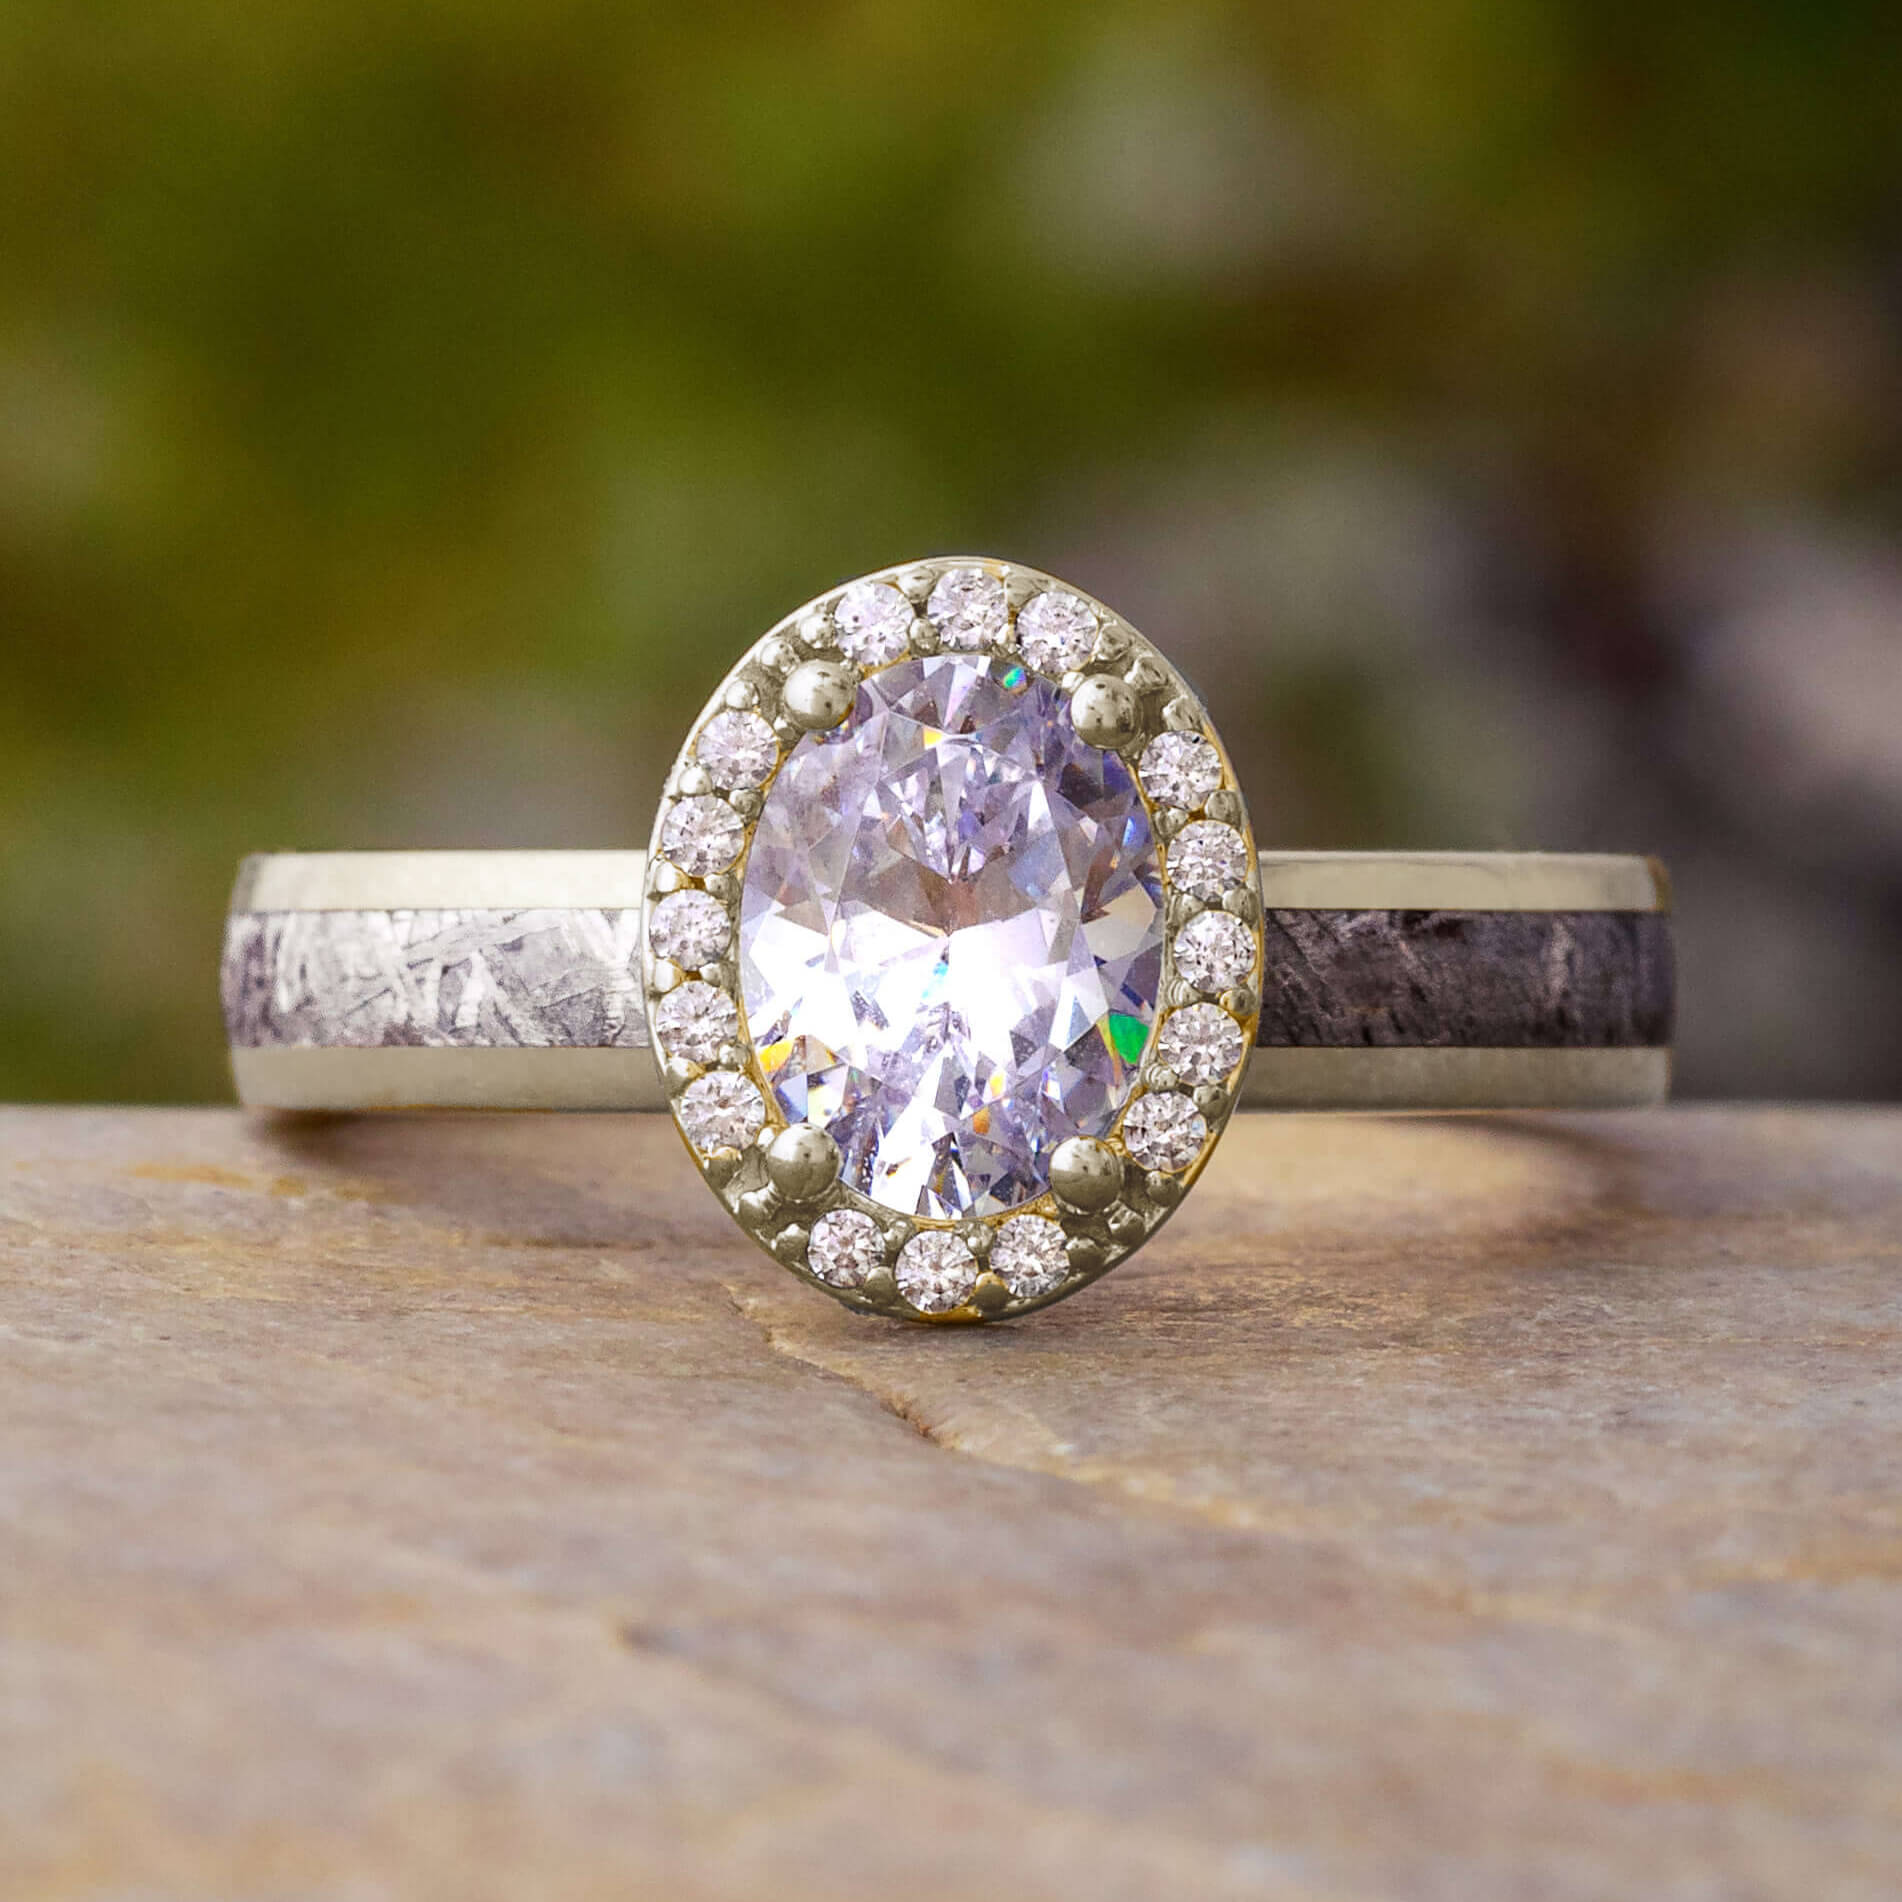 Oval Halo Moissanite & Meteorite Engagement Ring-4542 - Jewelry by Johan